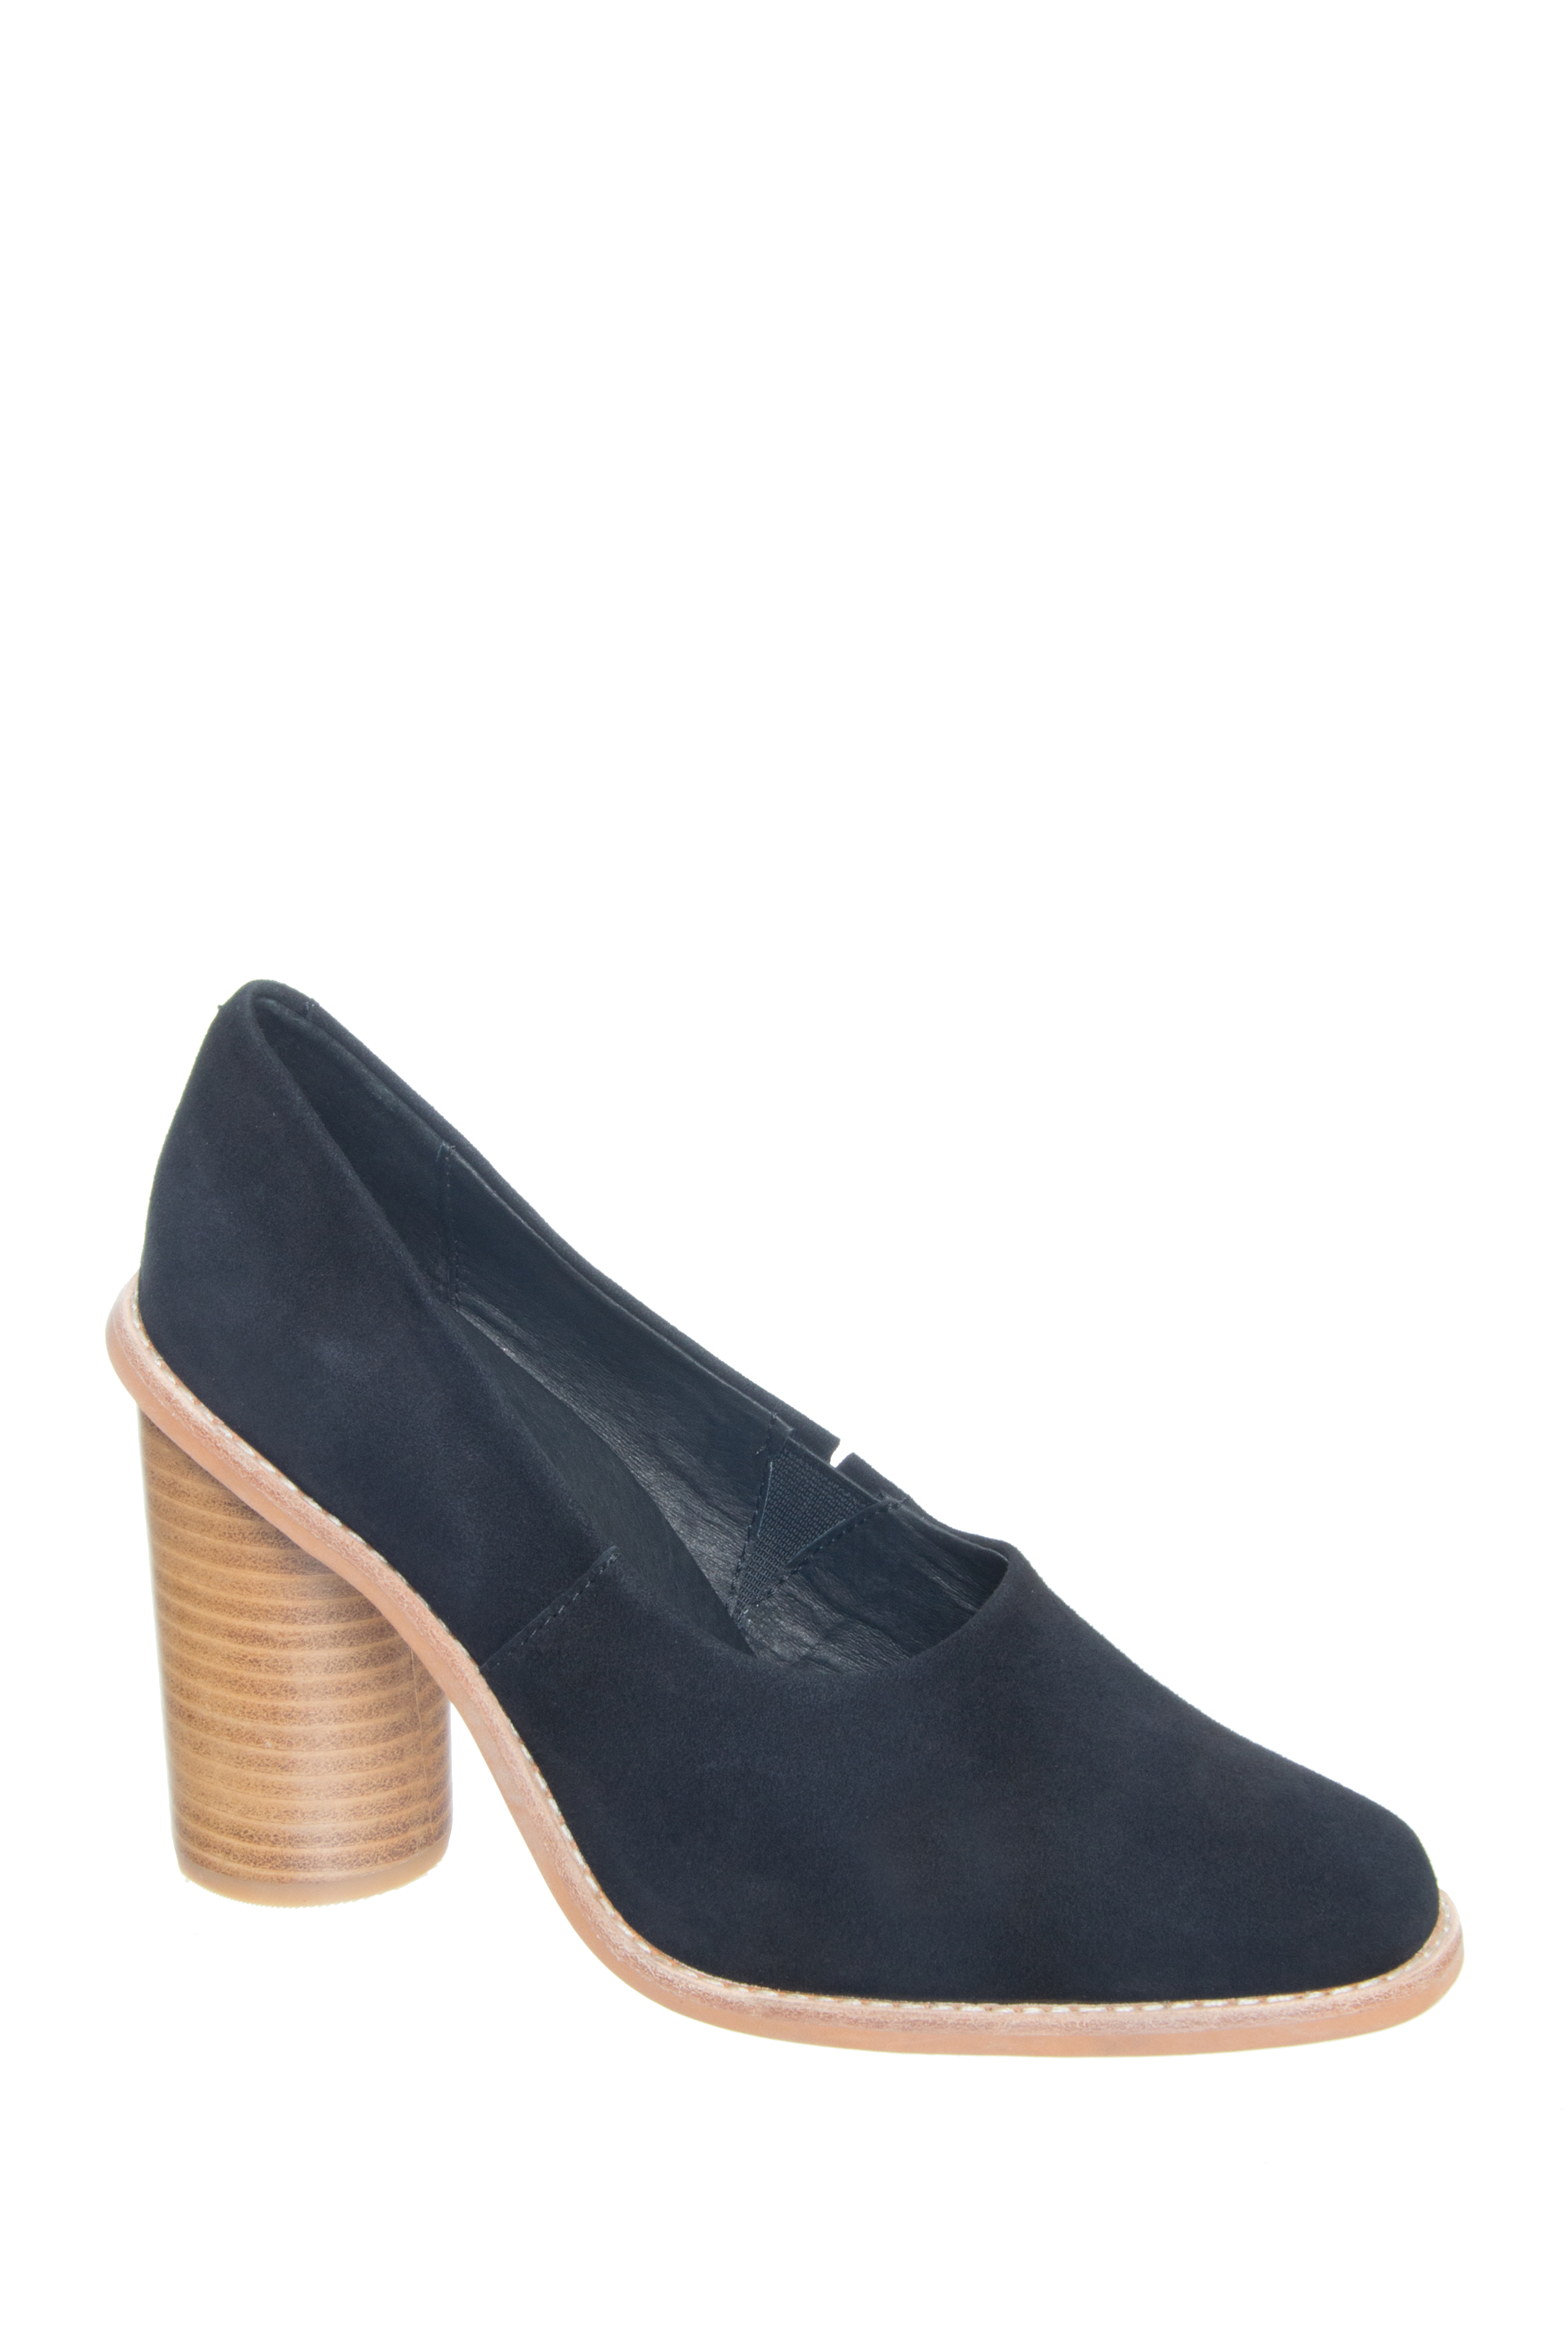 Sol Sana Kelly Heel Pumps - Black Suede